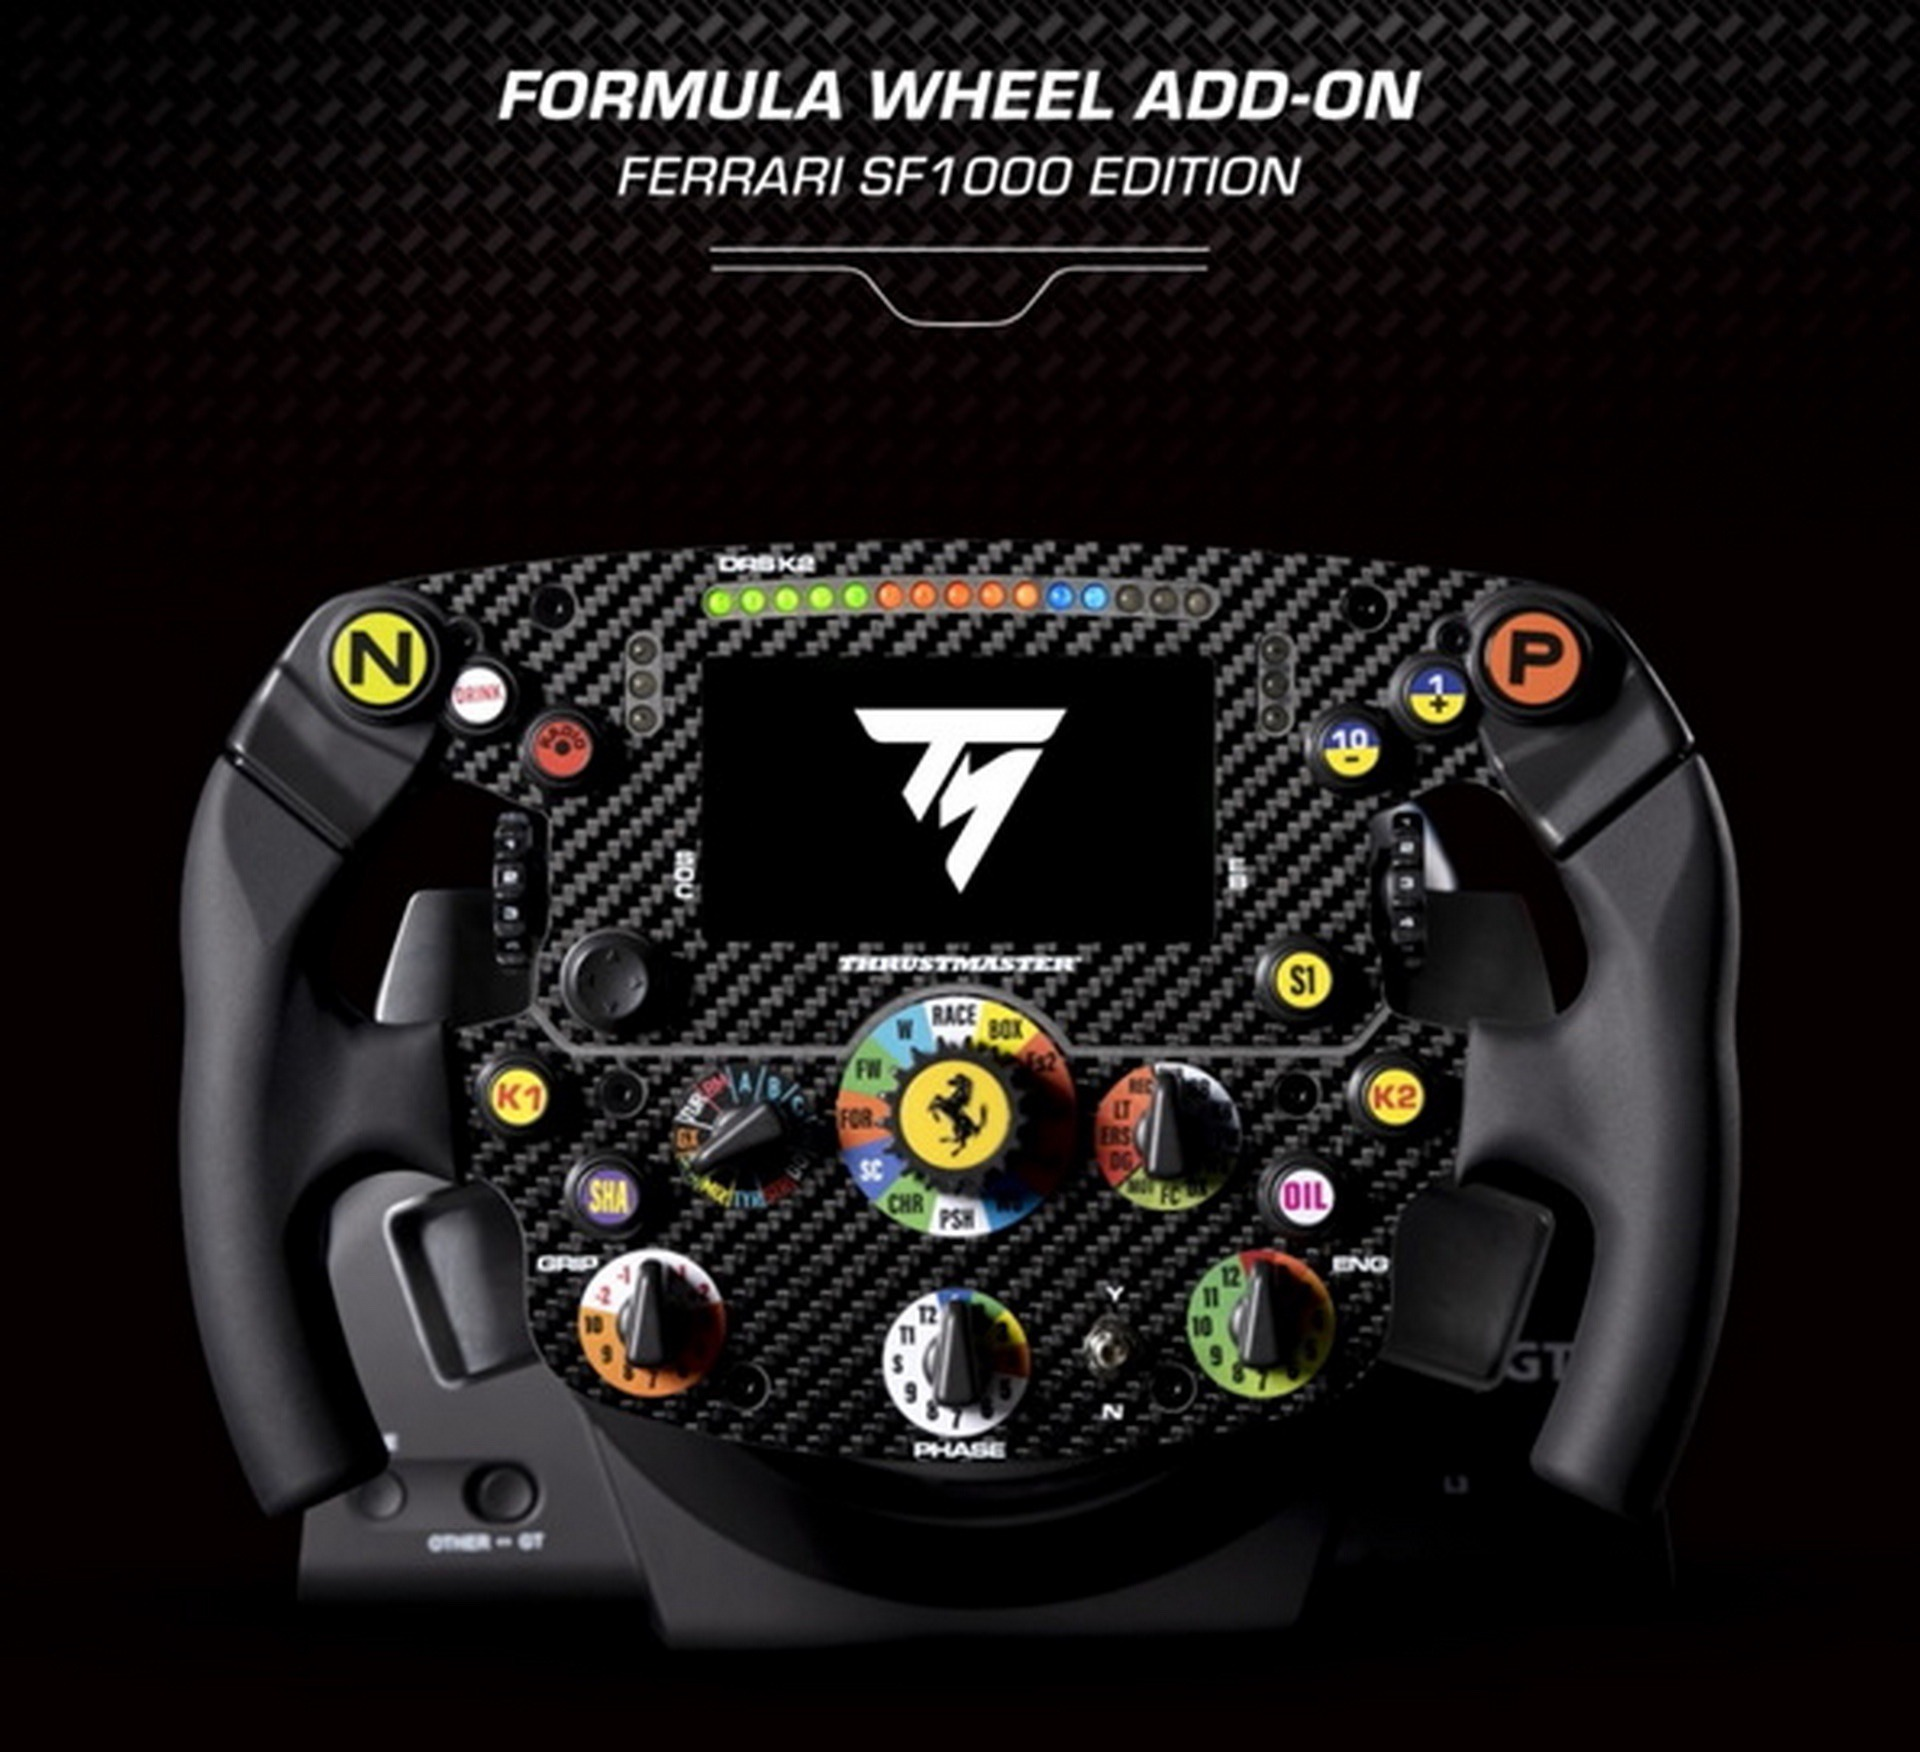 Thrustmaster_Ferrari_SF1000_Wheel-0006